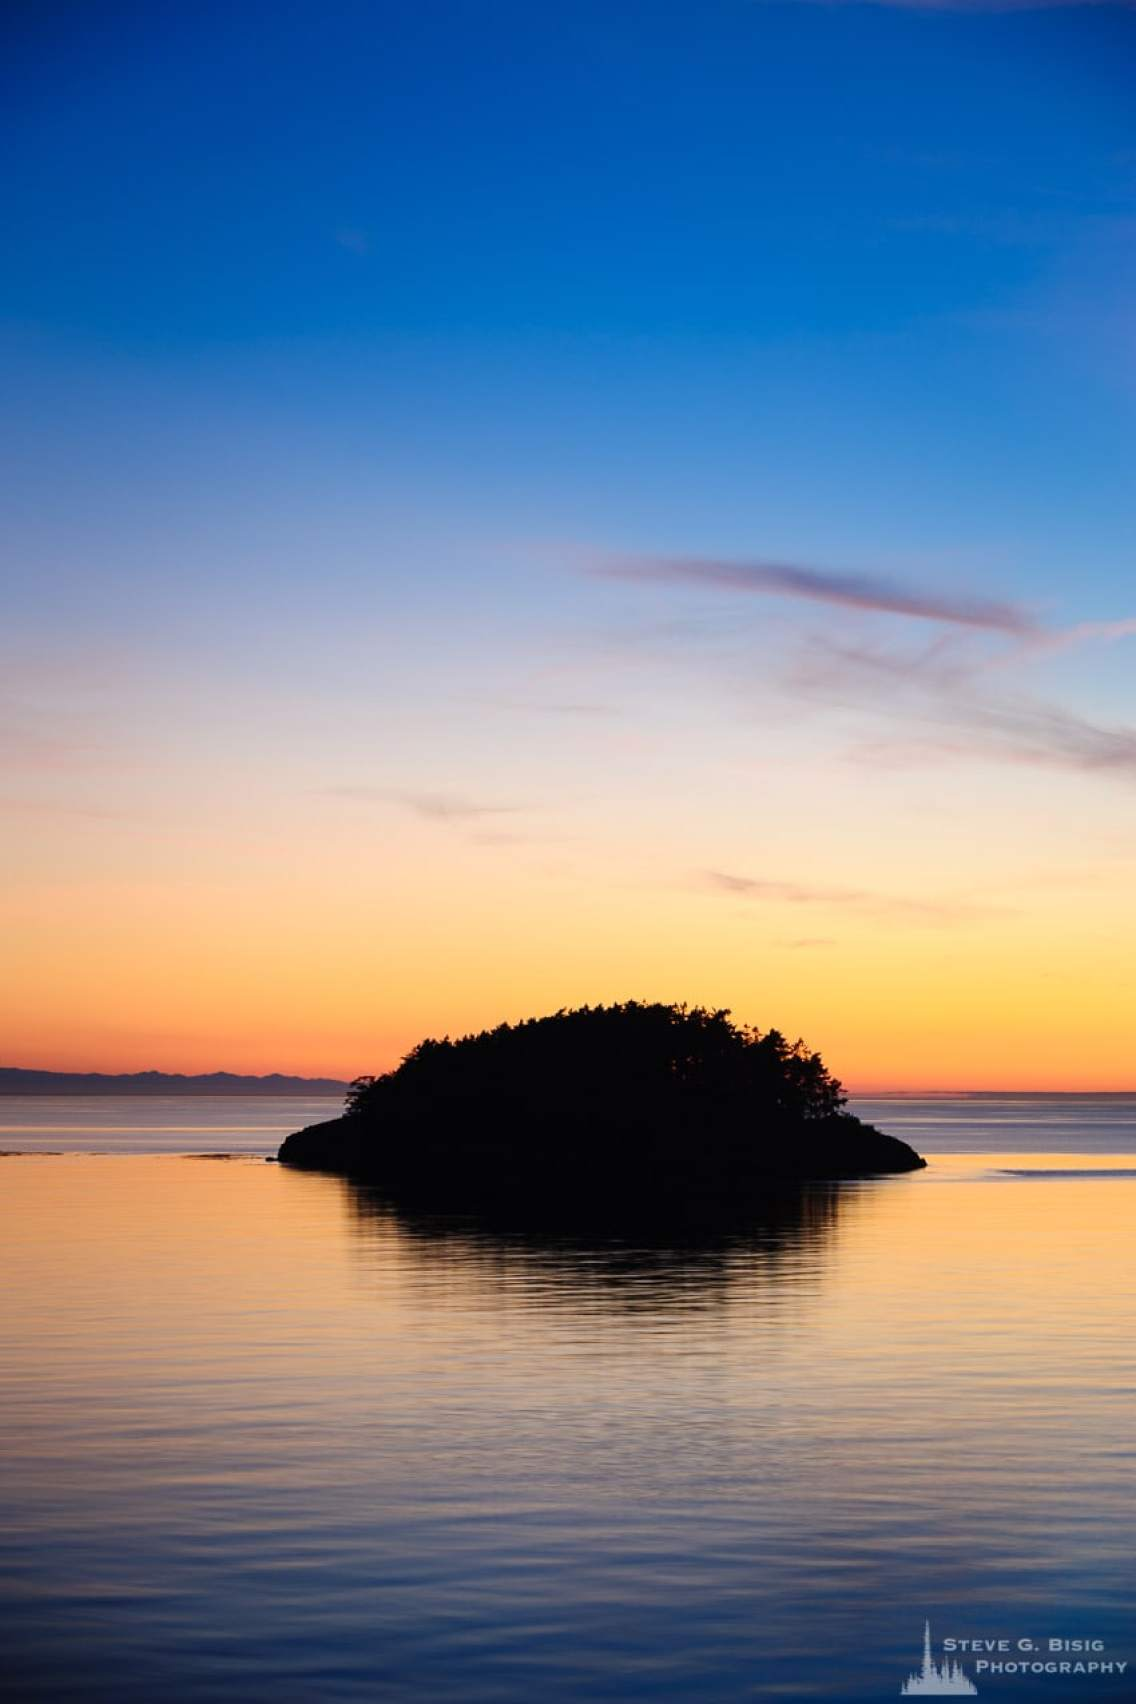 A landscape photograph of the August sunset over Deception Island at Deception Pass State Park, Washington.